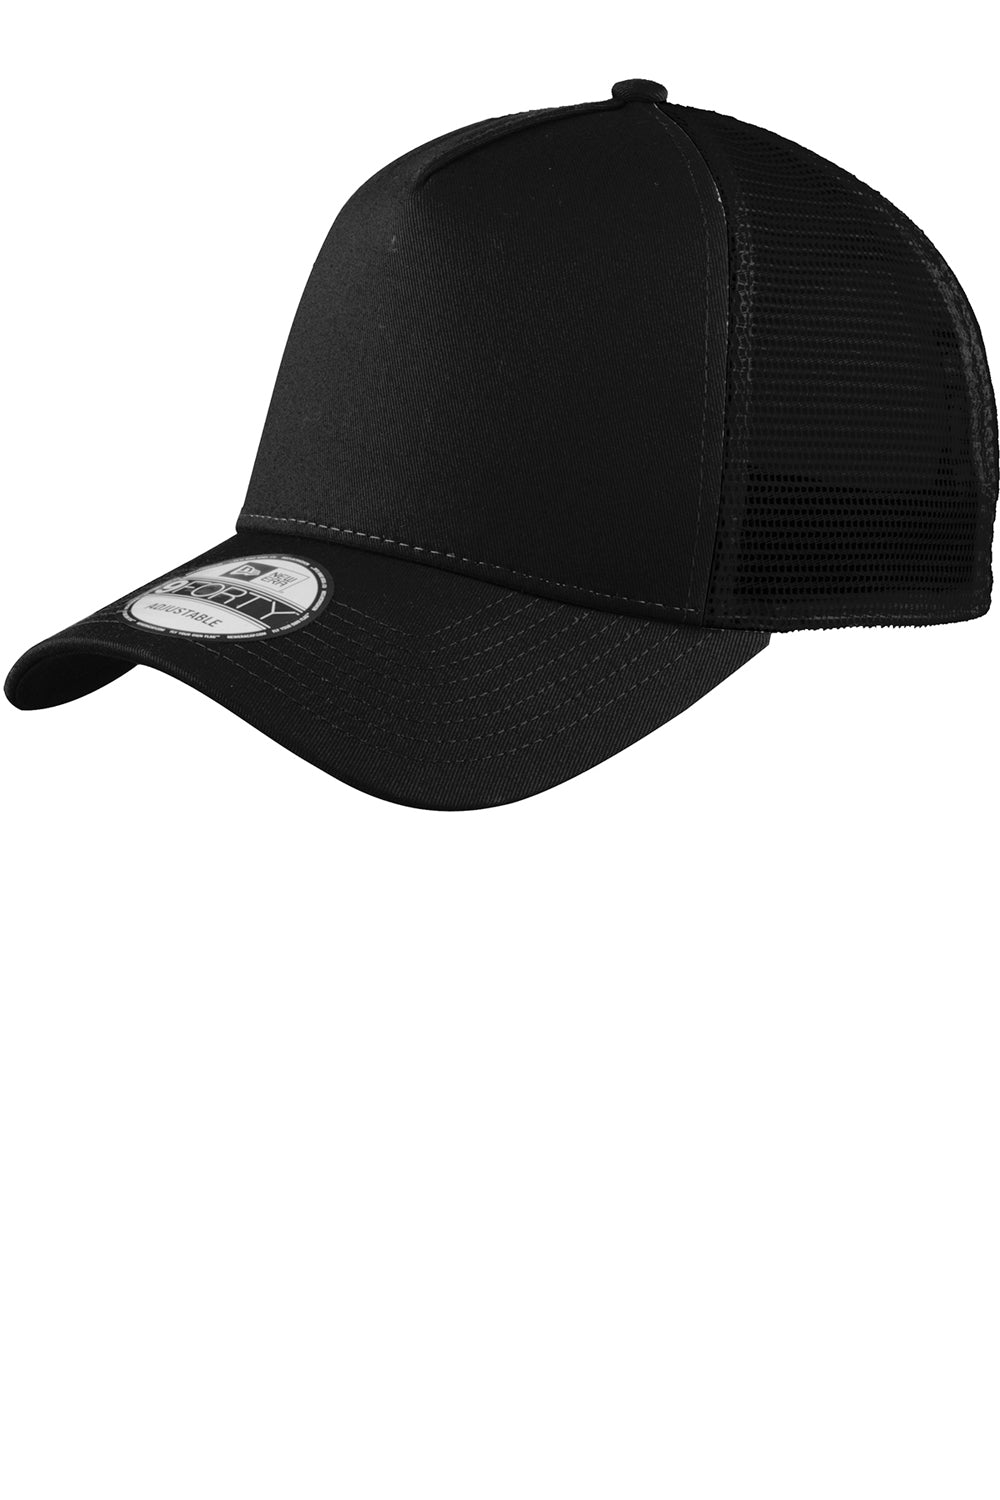 New Era NE205 Mens Adjustable Trucker Hat Black Front